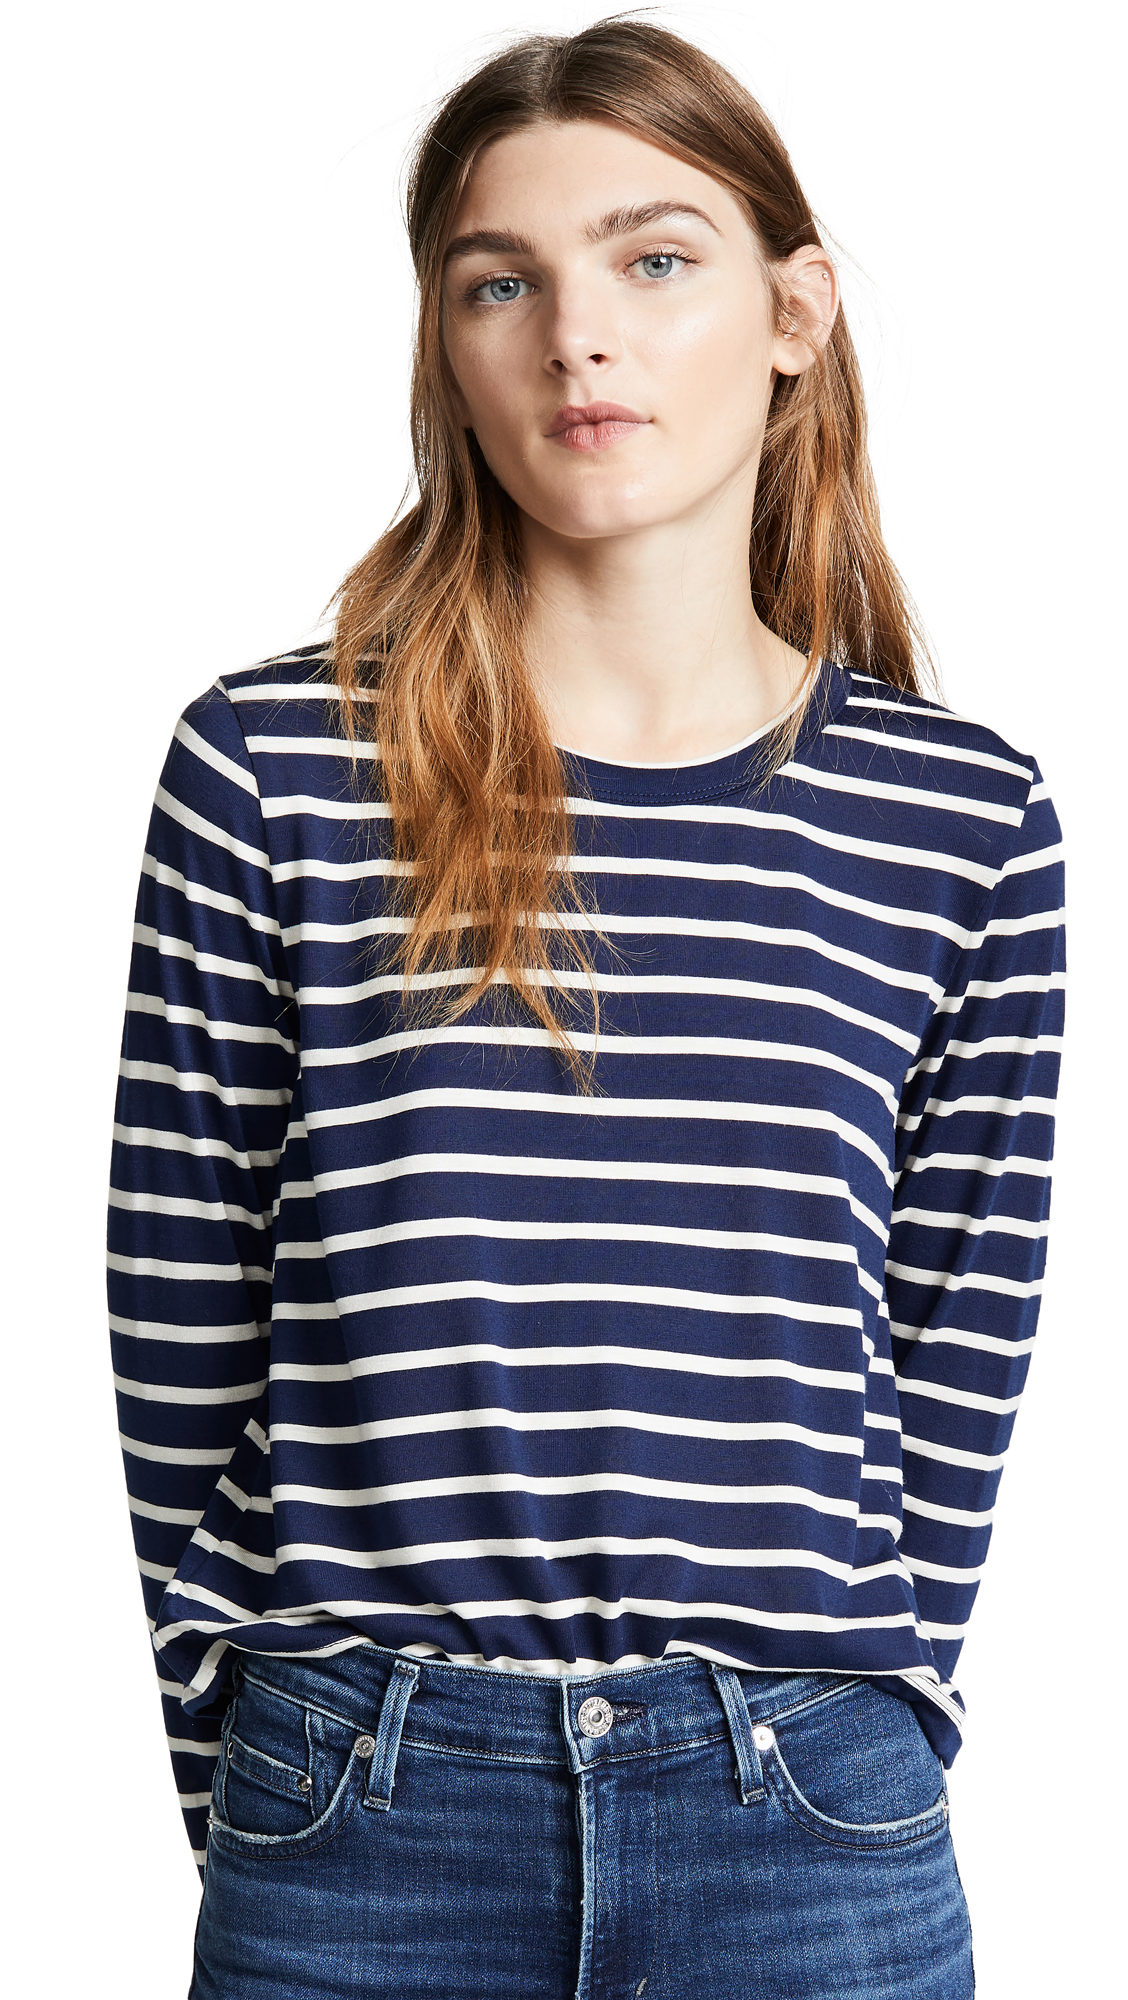 LIANA CLOTHING The Striped Millie Tee in Navy/White Stripe